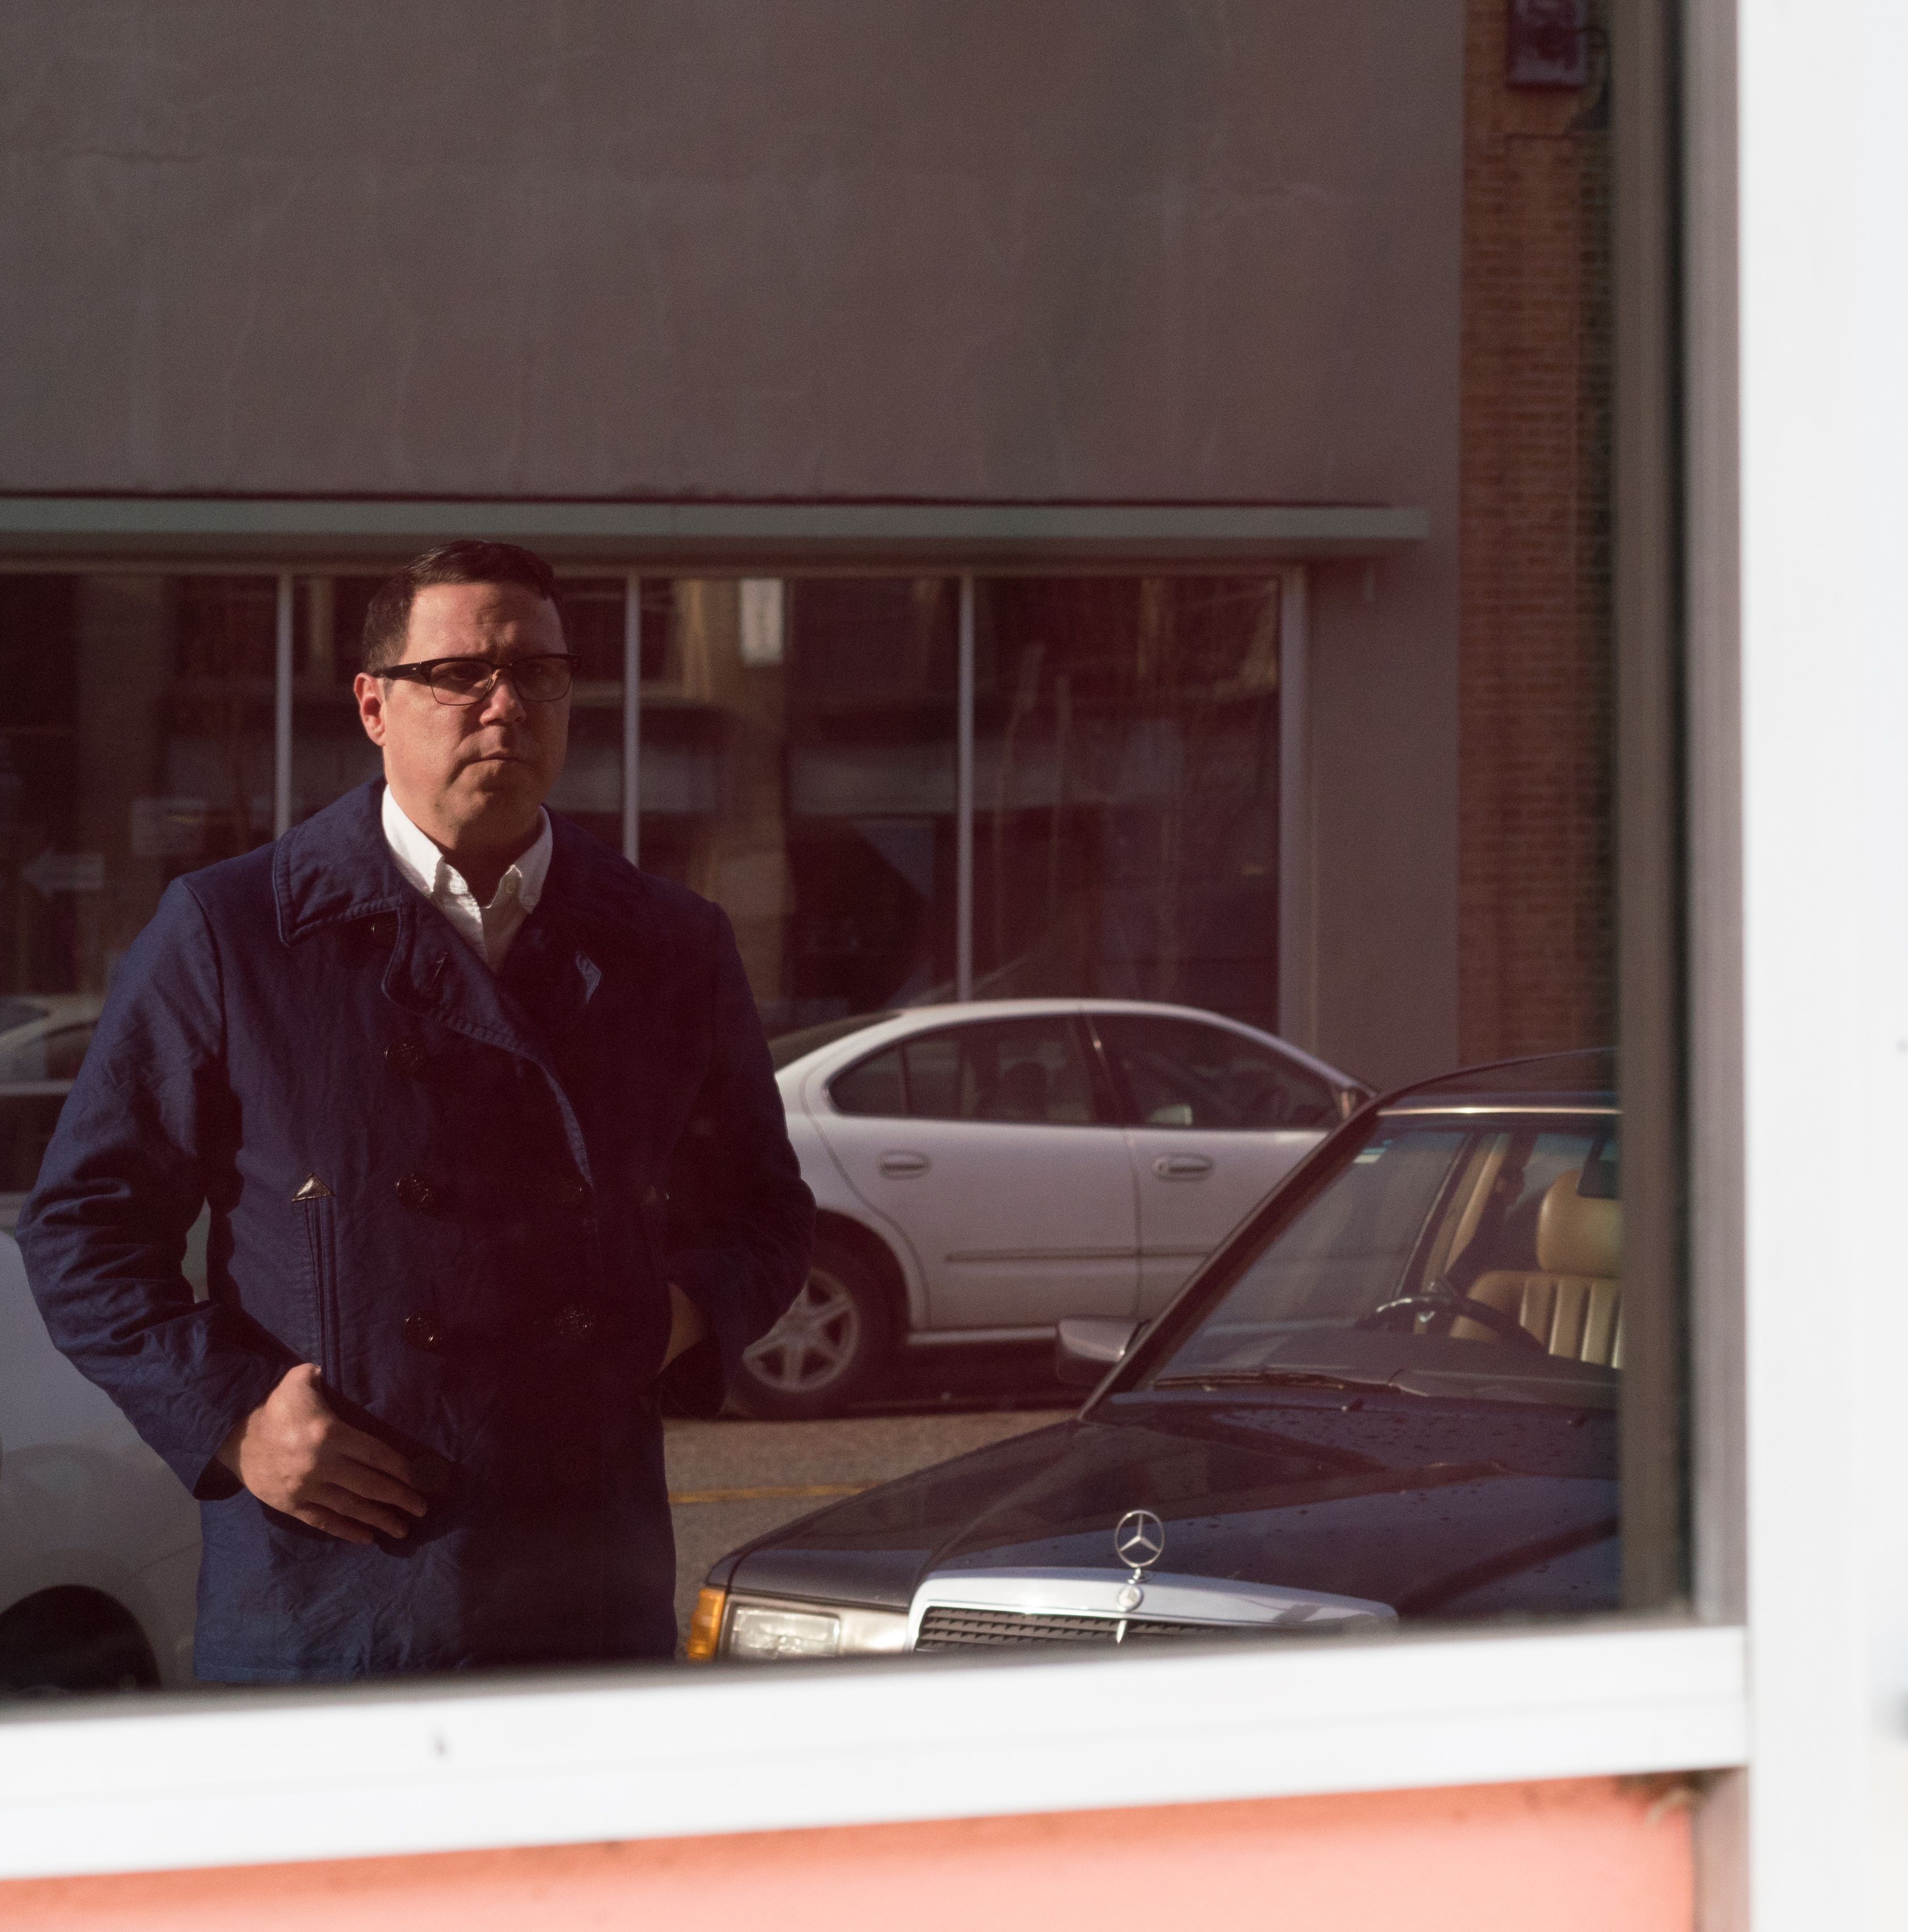 Damien Jurado's 'The Horizon Just Laughed' is an exercise in creativity